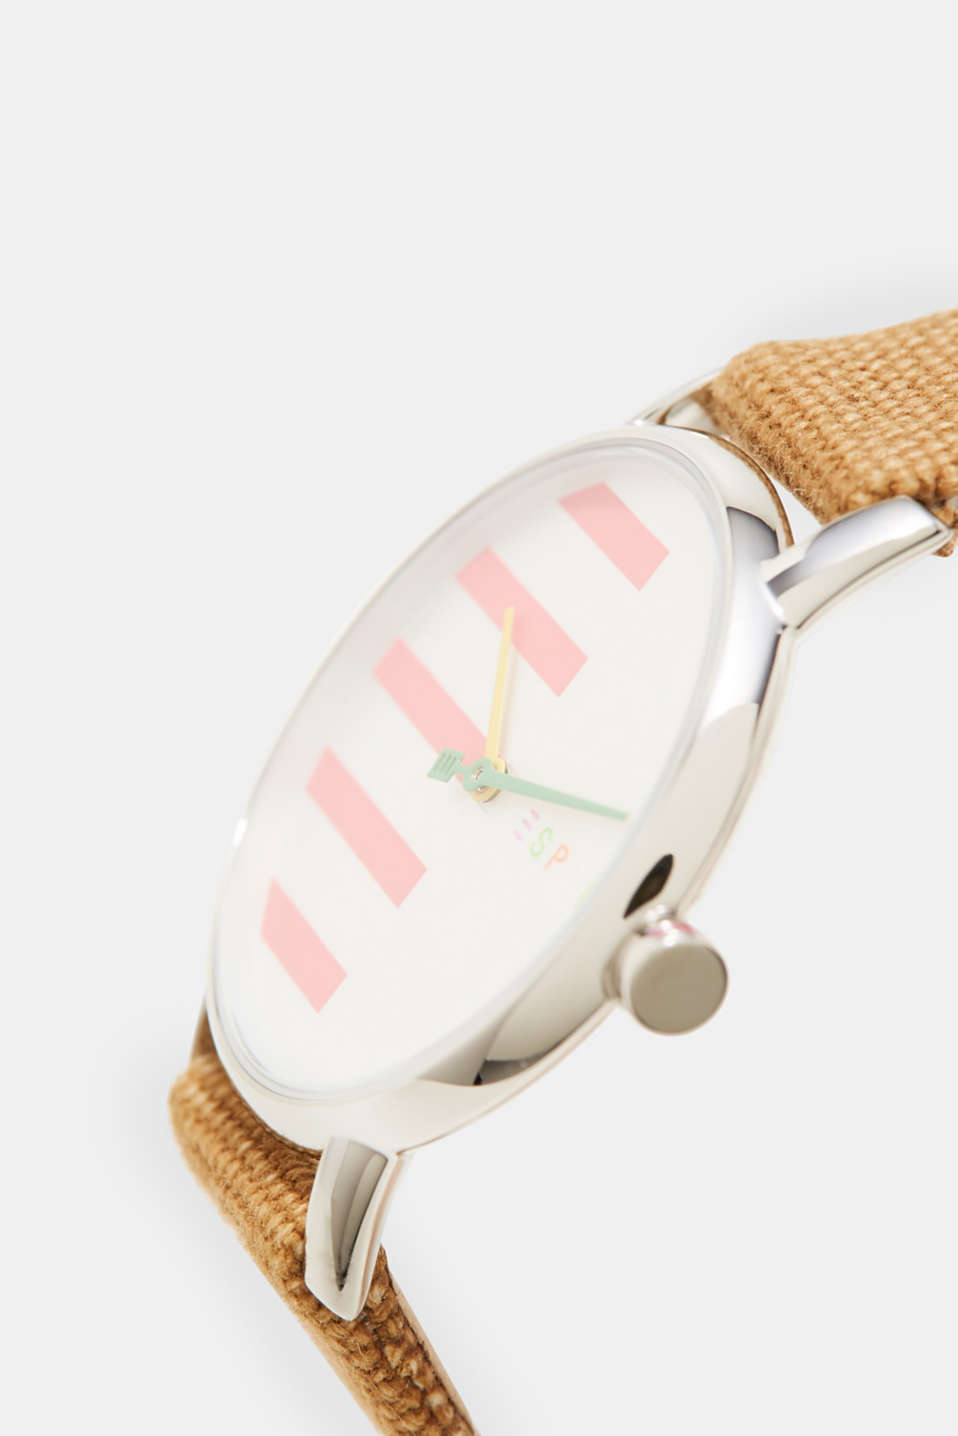 Watch with a canvas strap